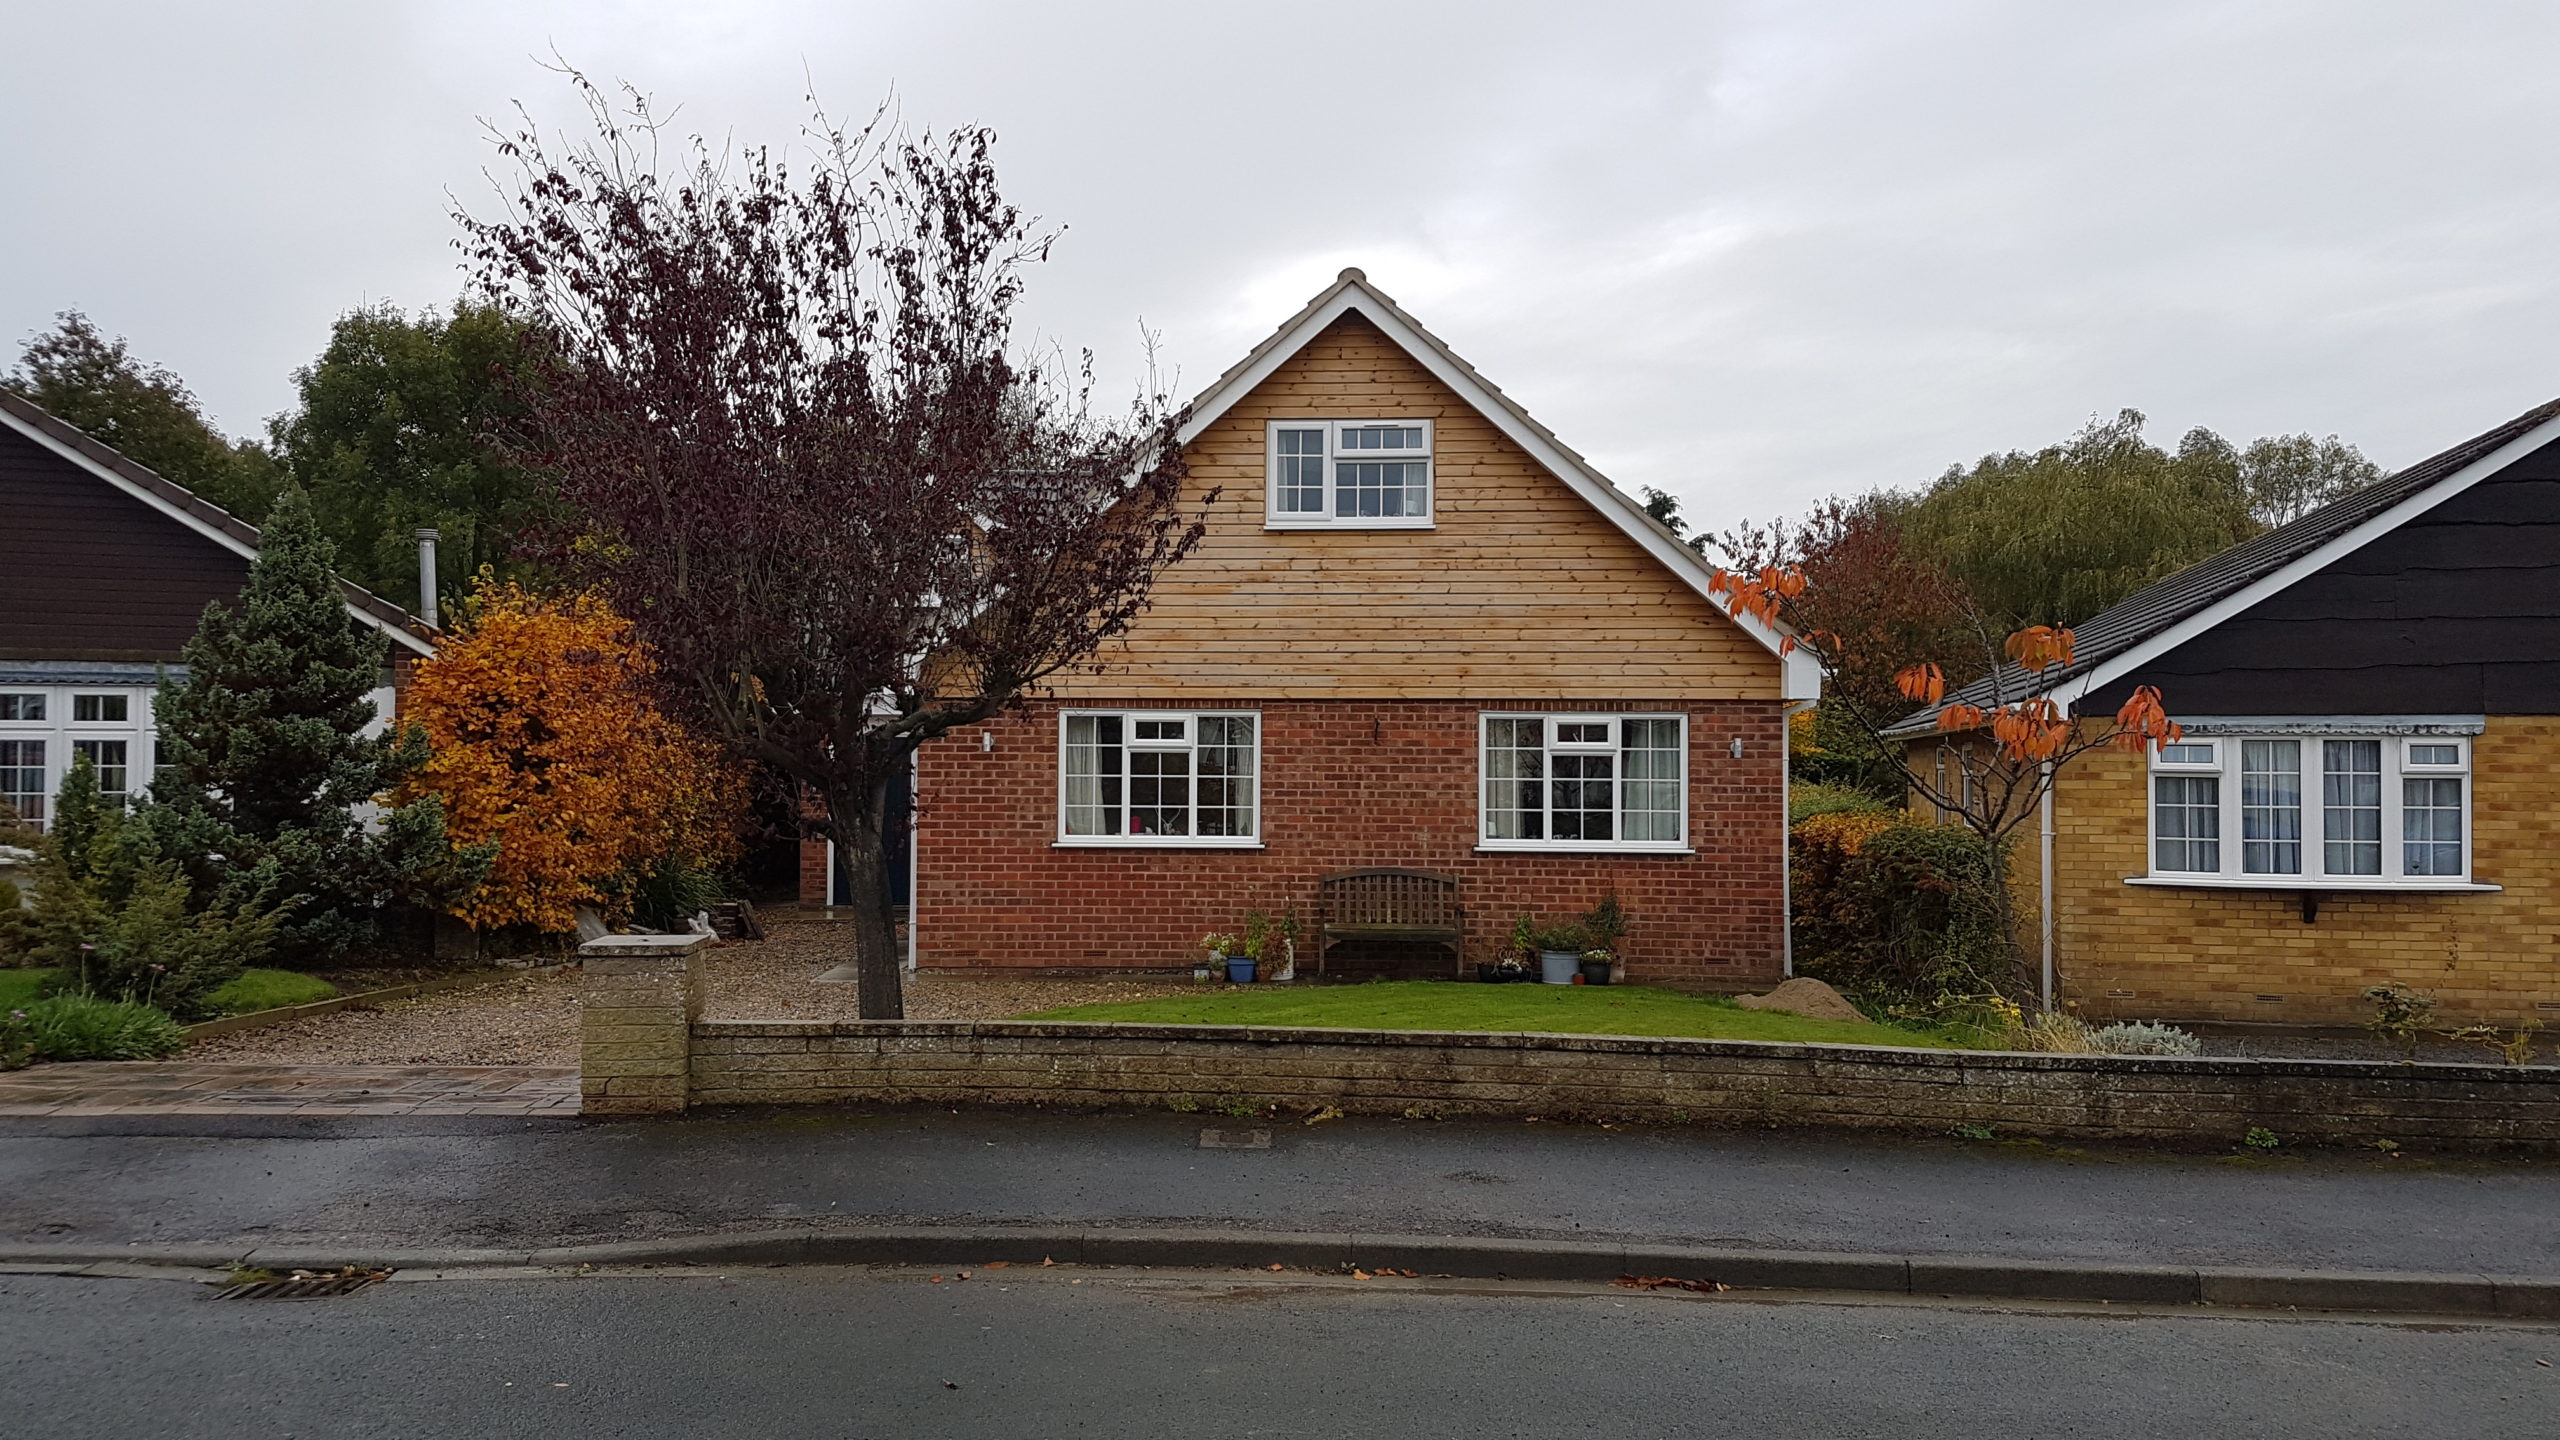 street view of bungalow with roof lift